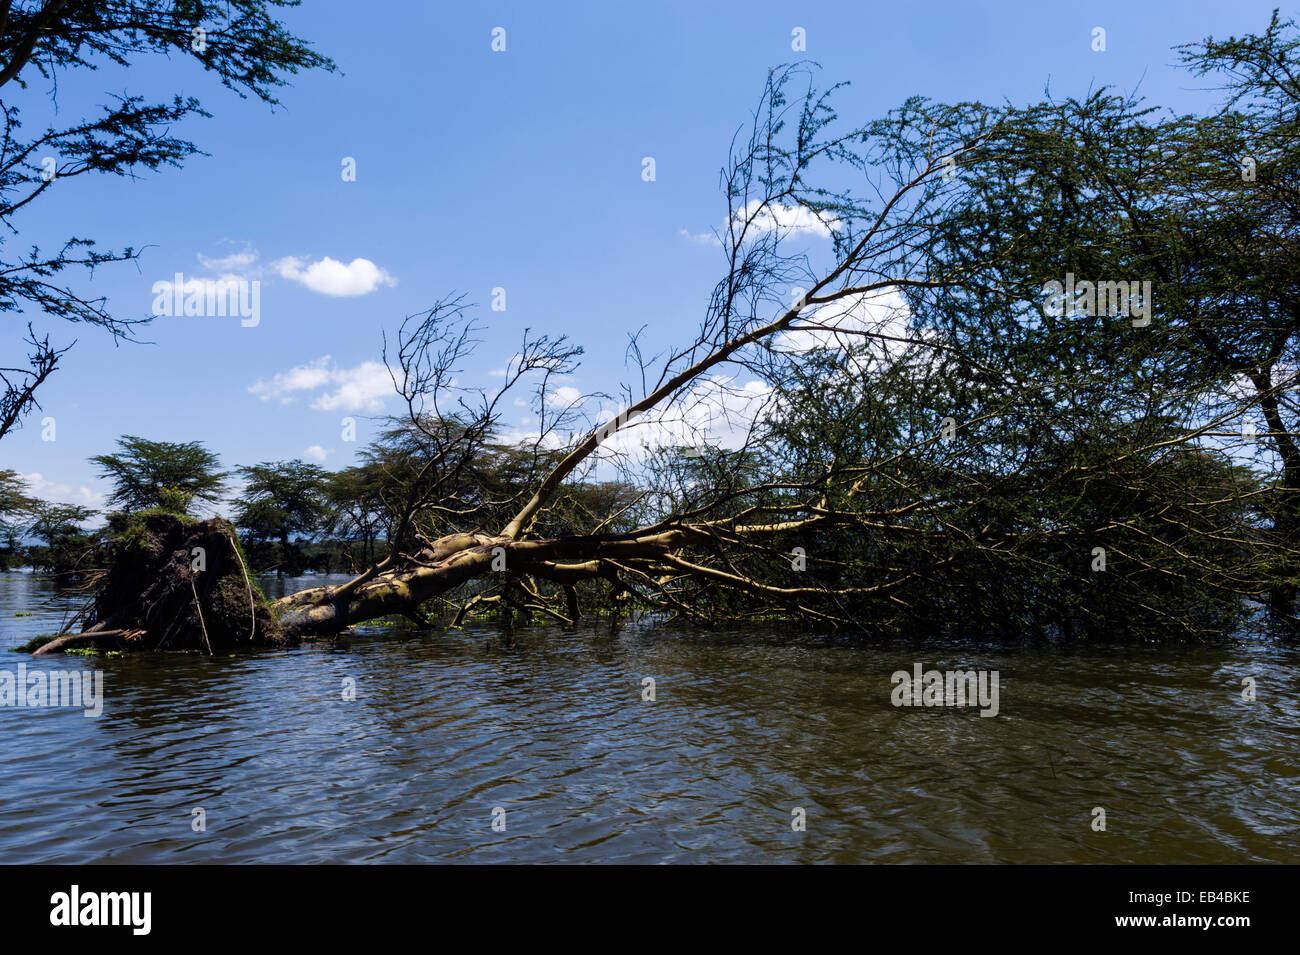 An Acacia tree toppled over by flood waters in a freshwater lake. Stock Photo